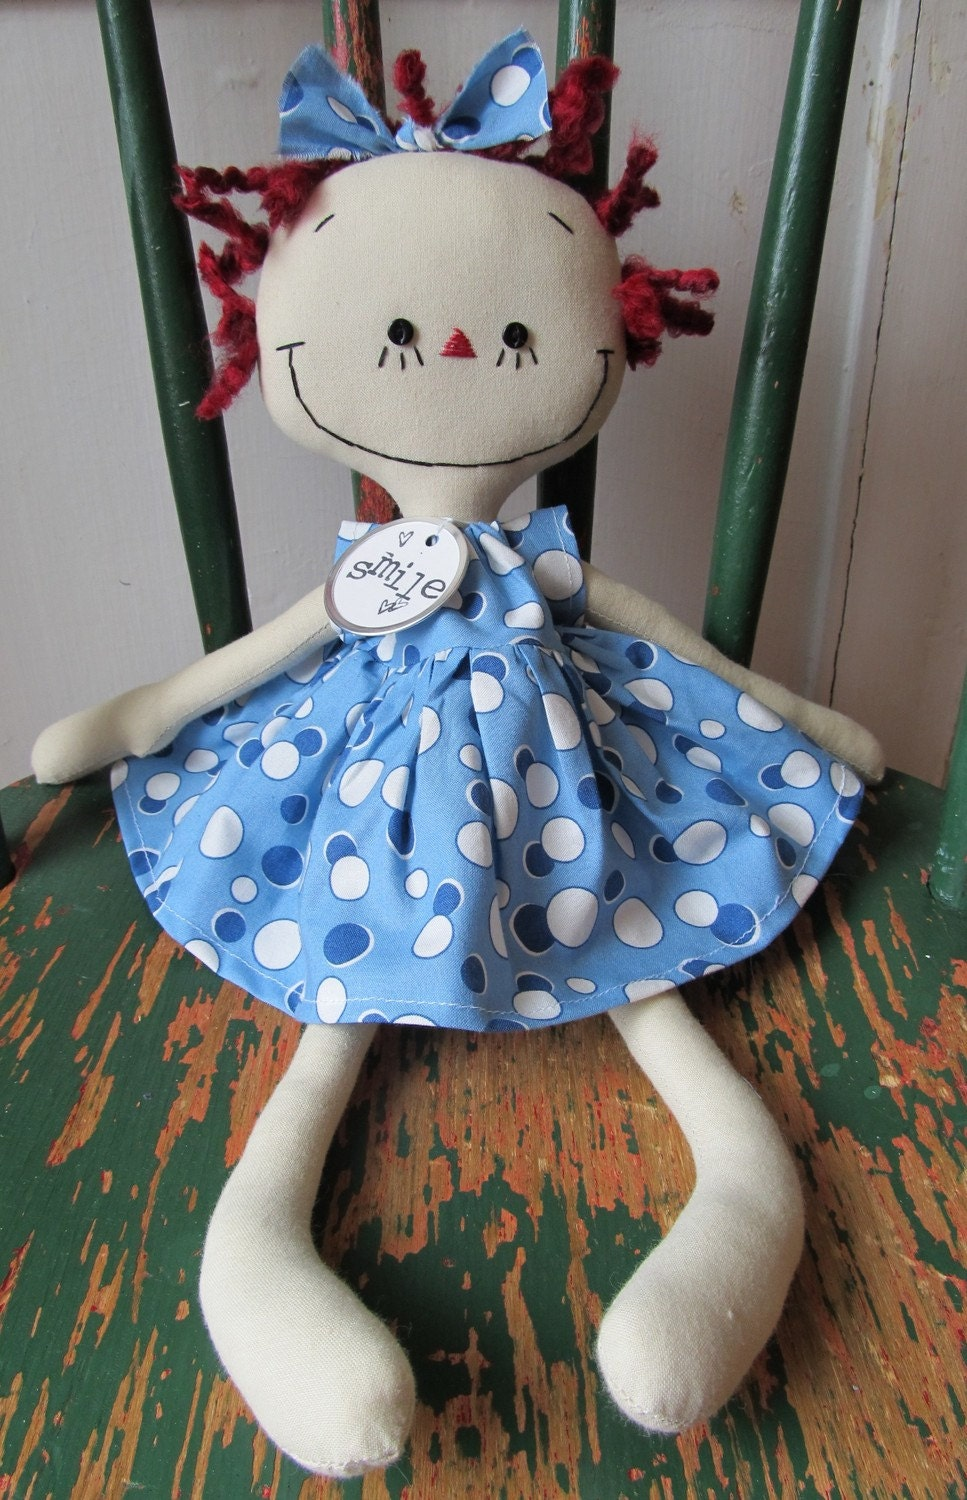 Annie in Blue and White Polka Dots handmade cloth rag doll